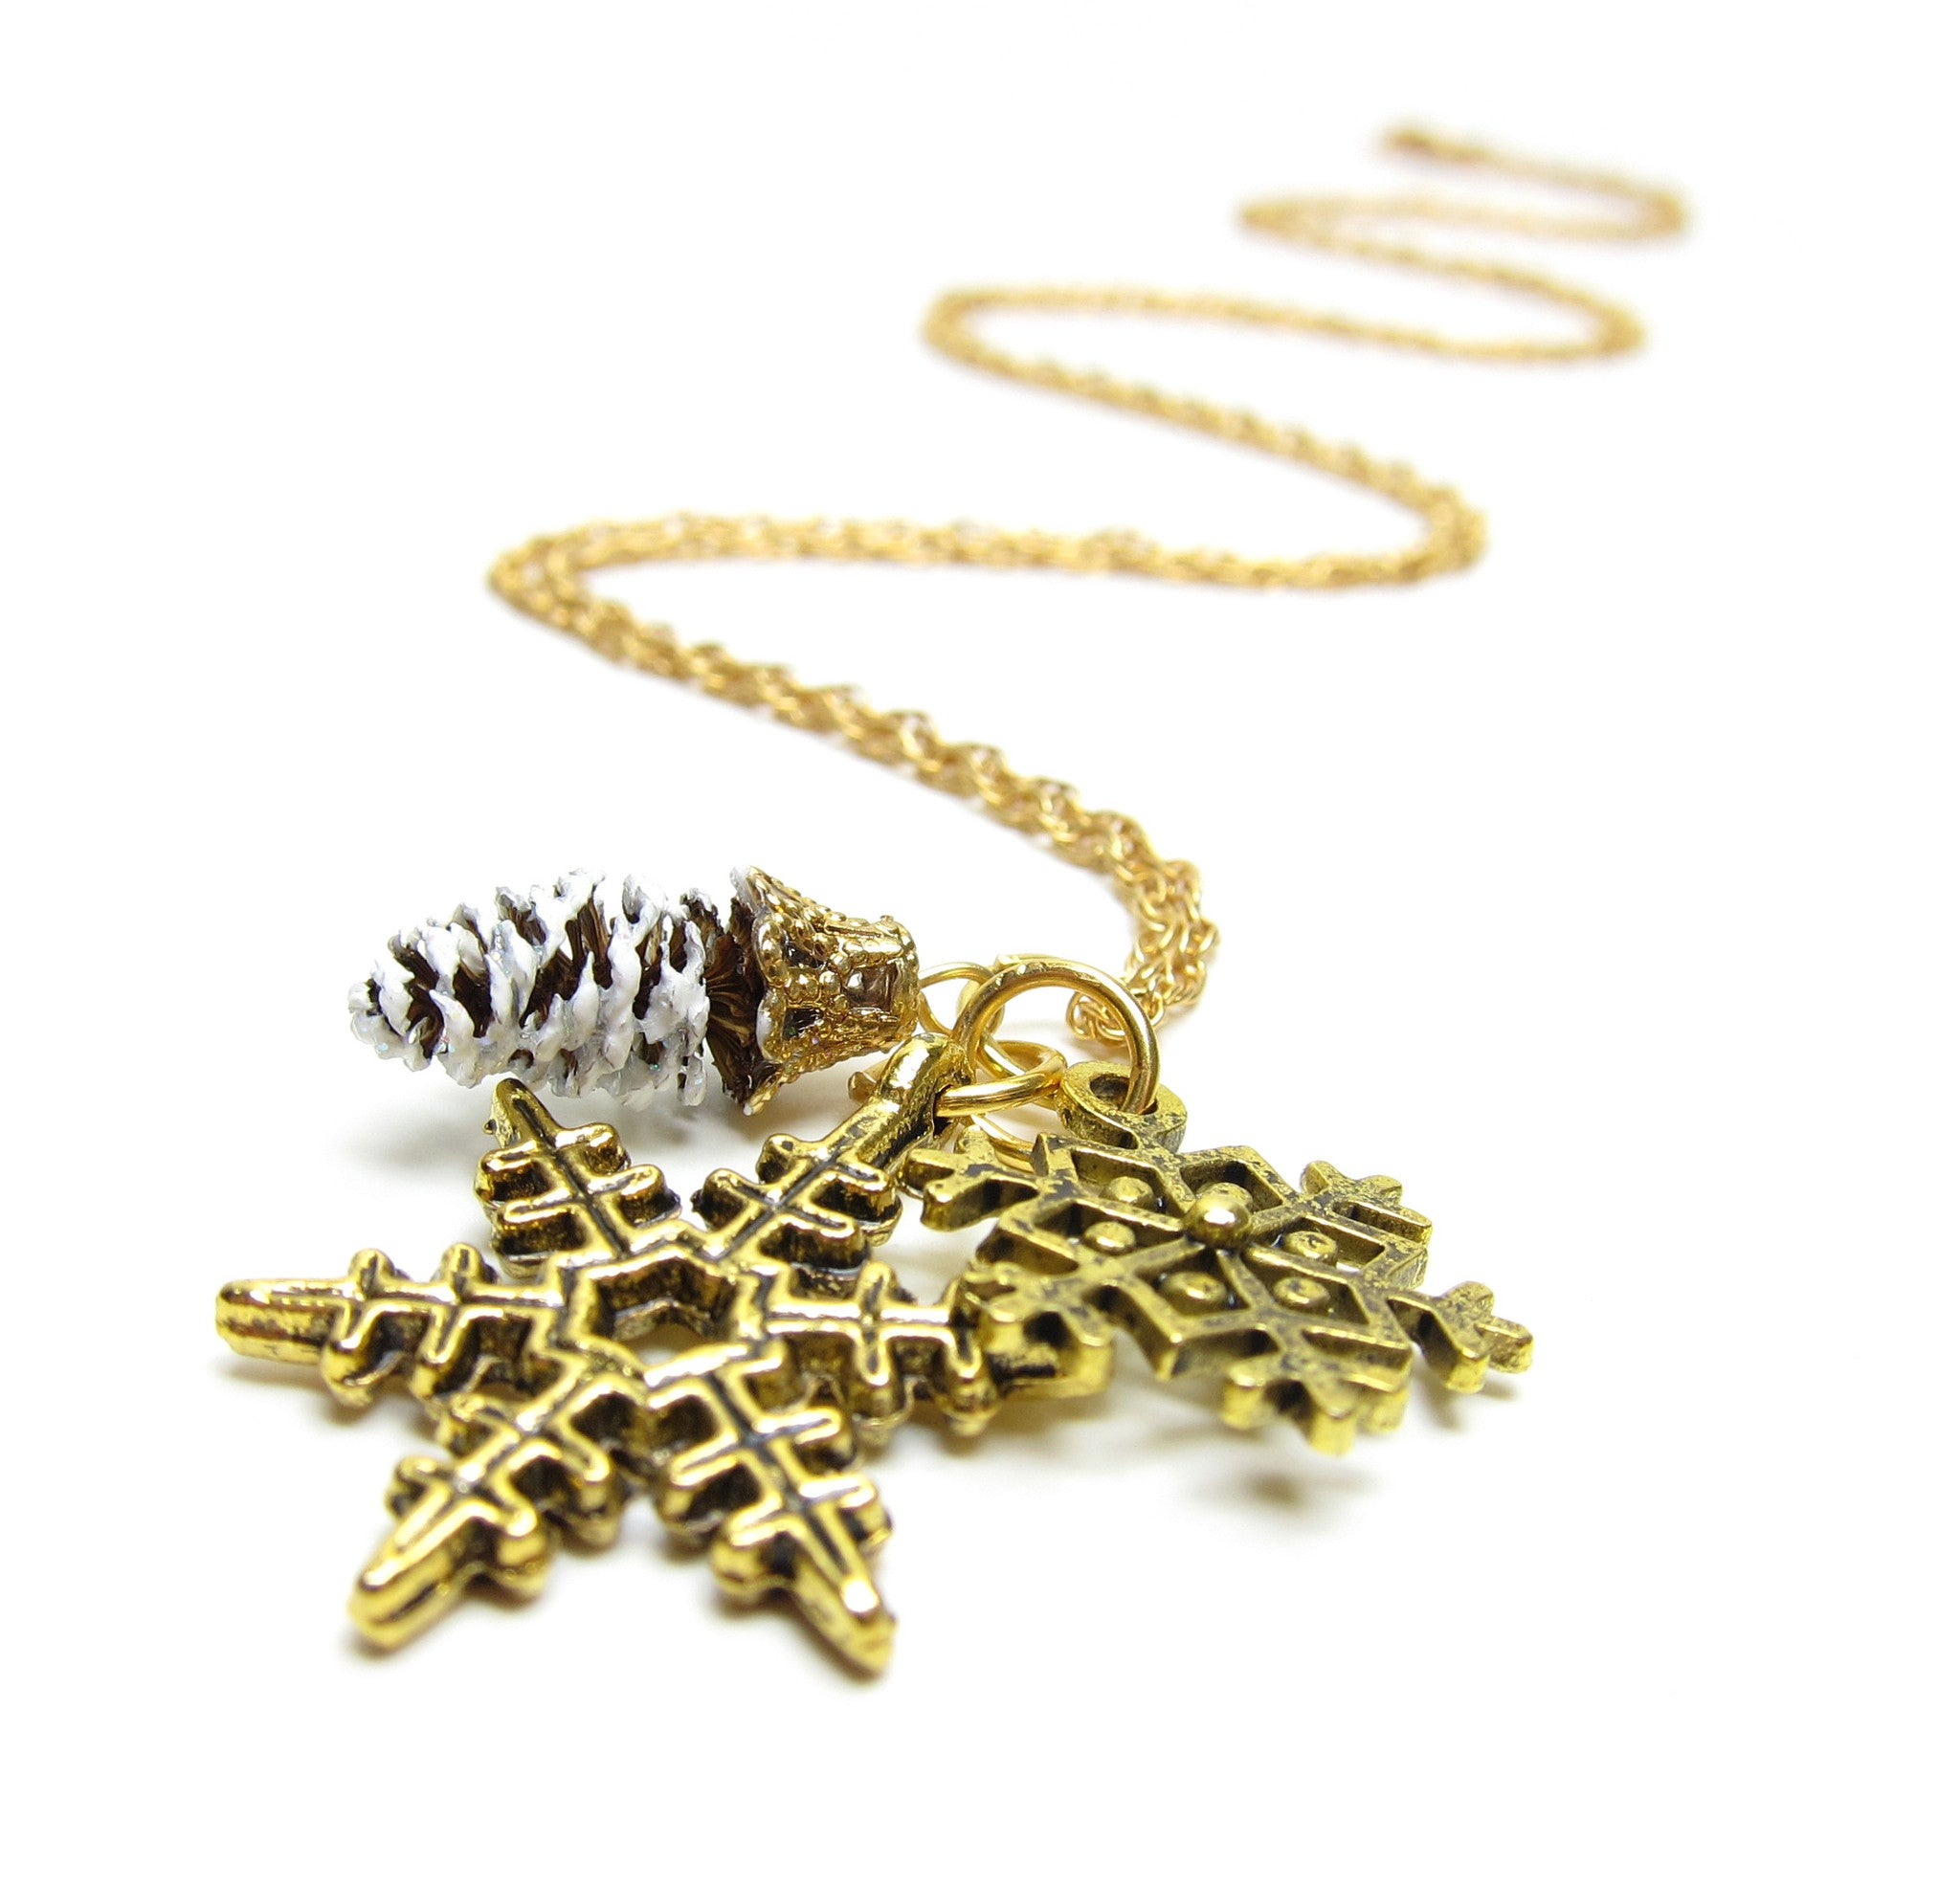 Gold Necklace with Snowflake Charms and Real Pine Cone